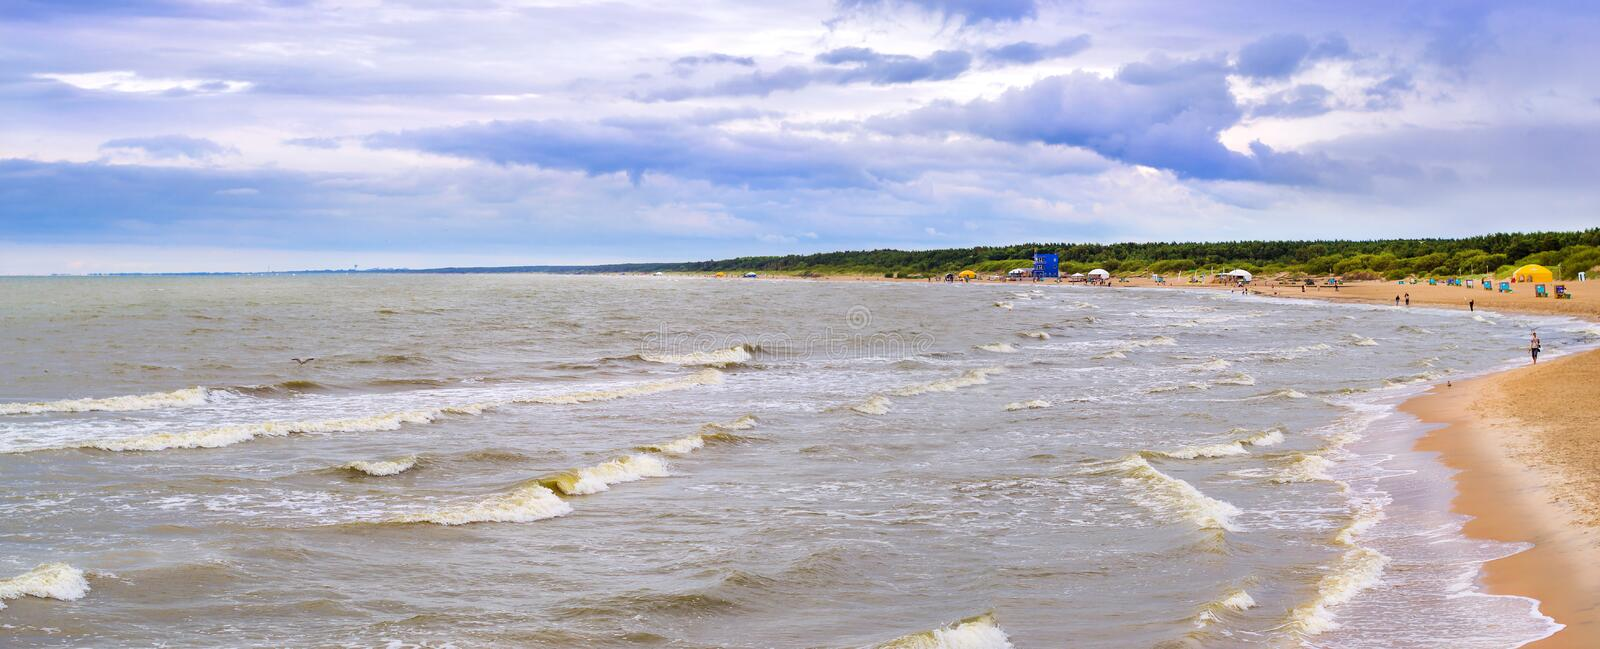 Waves on Baltic sea in resort Palanga, Lithuania stock images